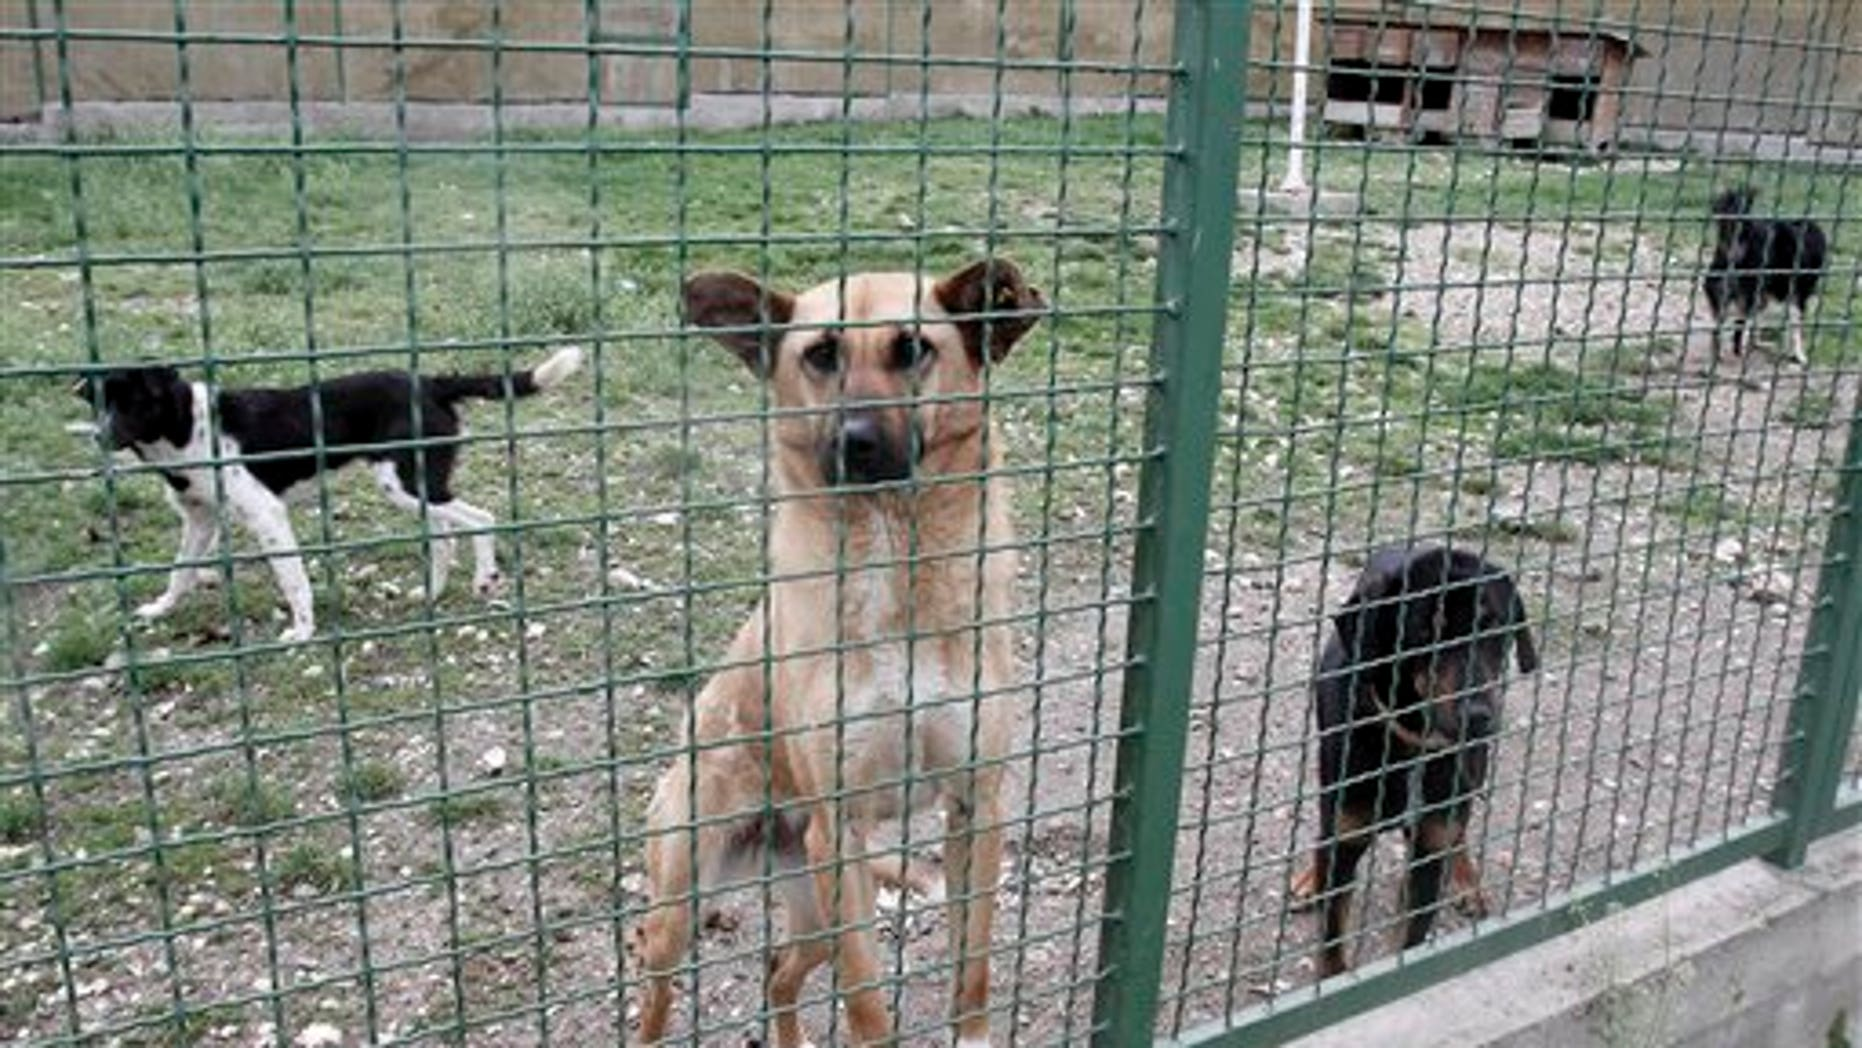 May 4: Street dogs seen at a dog shelter in the village of Harilac, Kosovo, after they escaped the fate of fellow dogs which have become the target of a campaign to cull street dogs in Kosovo. Authorities in Kosovo's capital of Pristina say 190 street dogs have been shot and killed in the first three weeks of a culling campaign that has been harshly criticized by animal lovers, but officials claim the city is plagued by packs of dogs that often attack people.(AP)